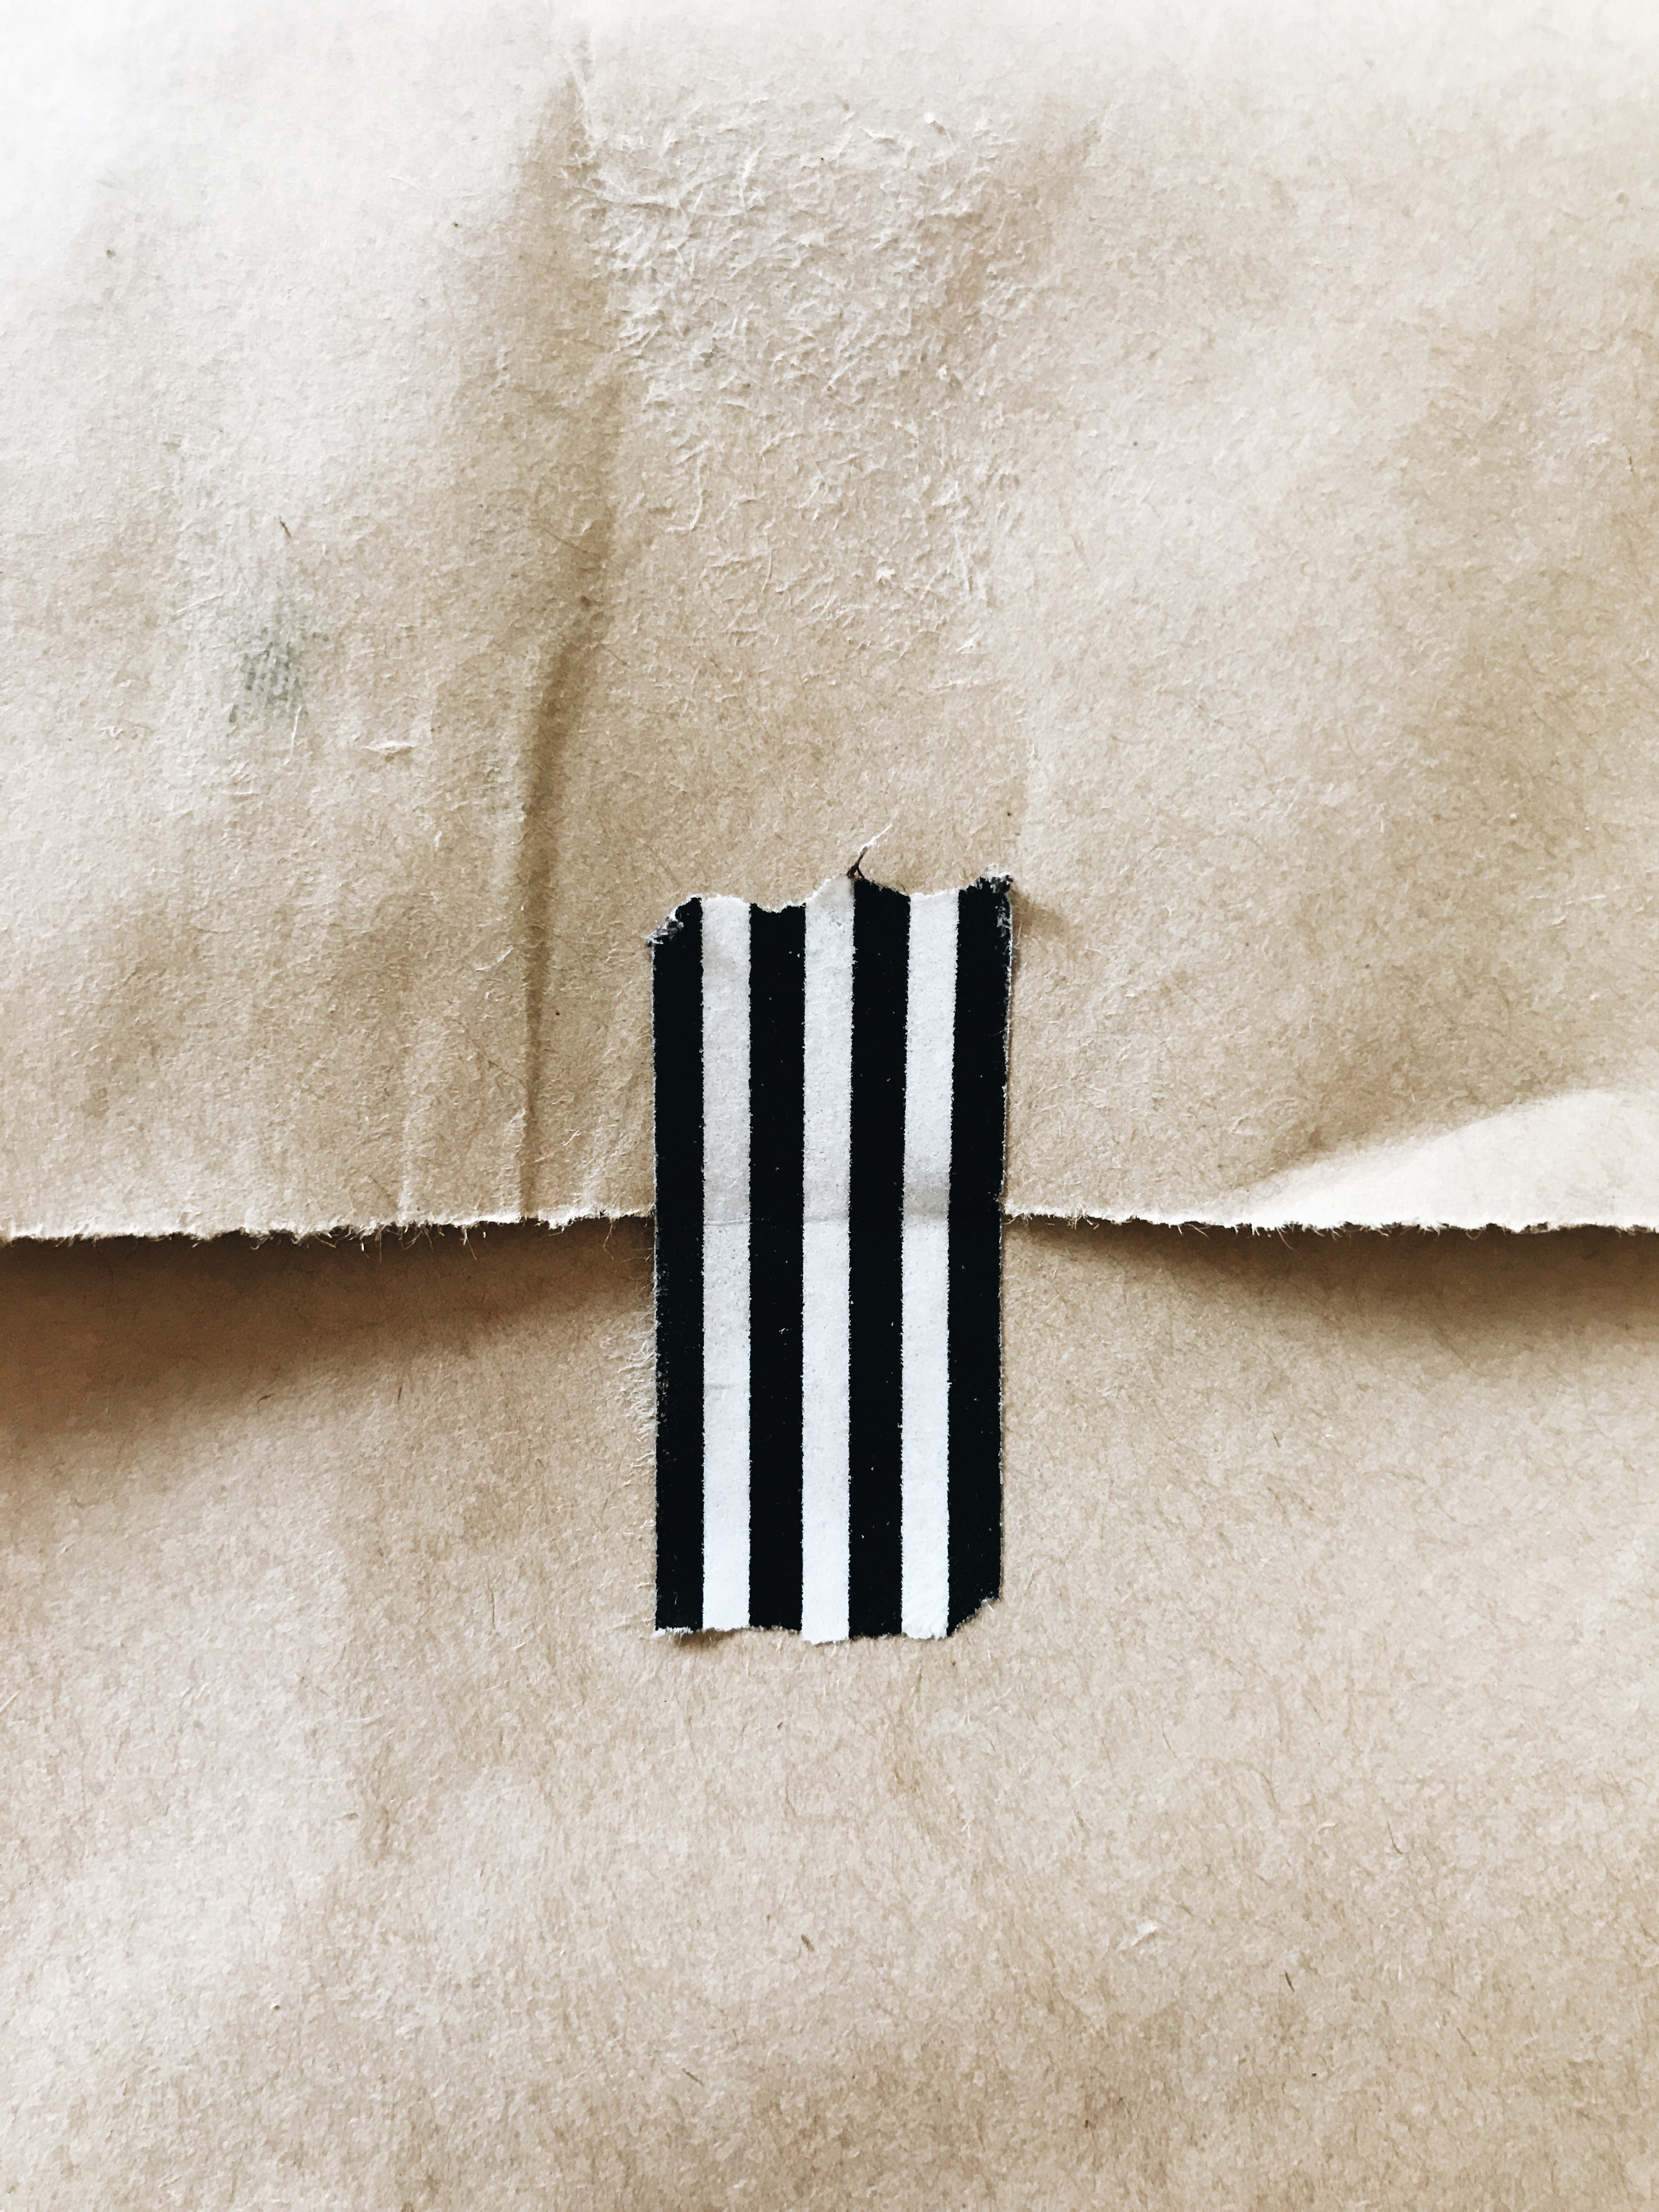 black and white tape on brown bag